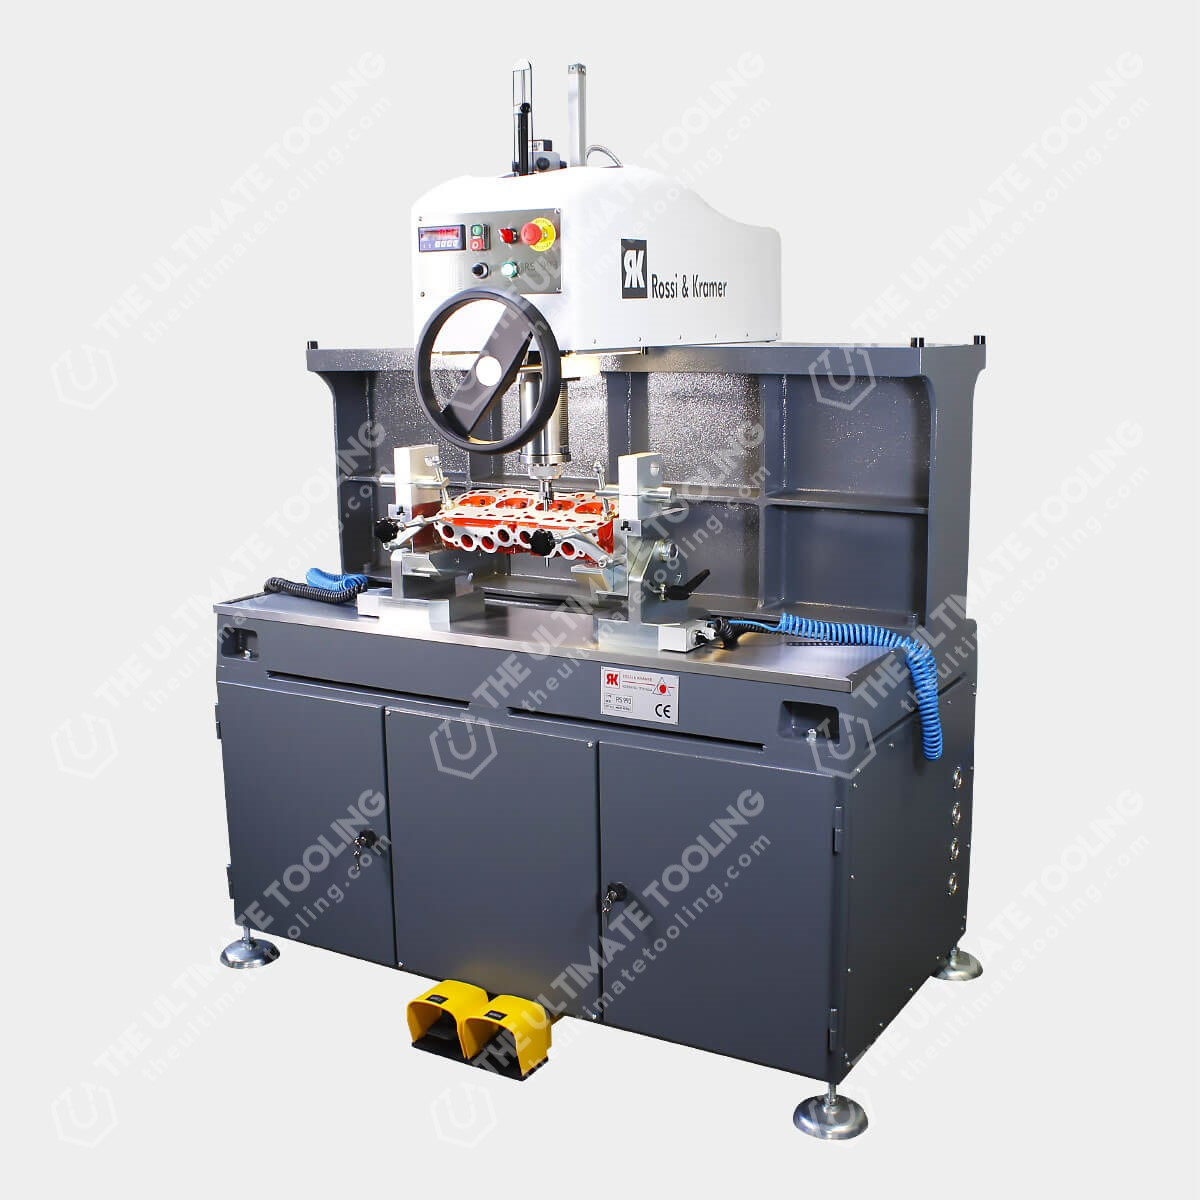 PEG RS 993 Valve Seat Cutting Machine